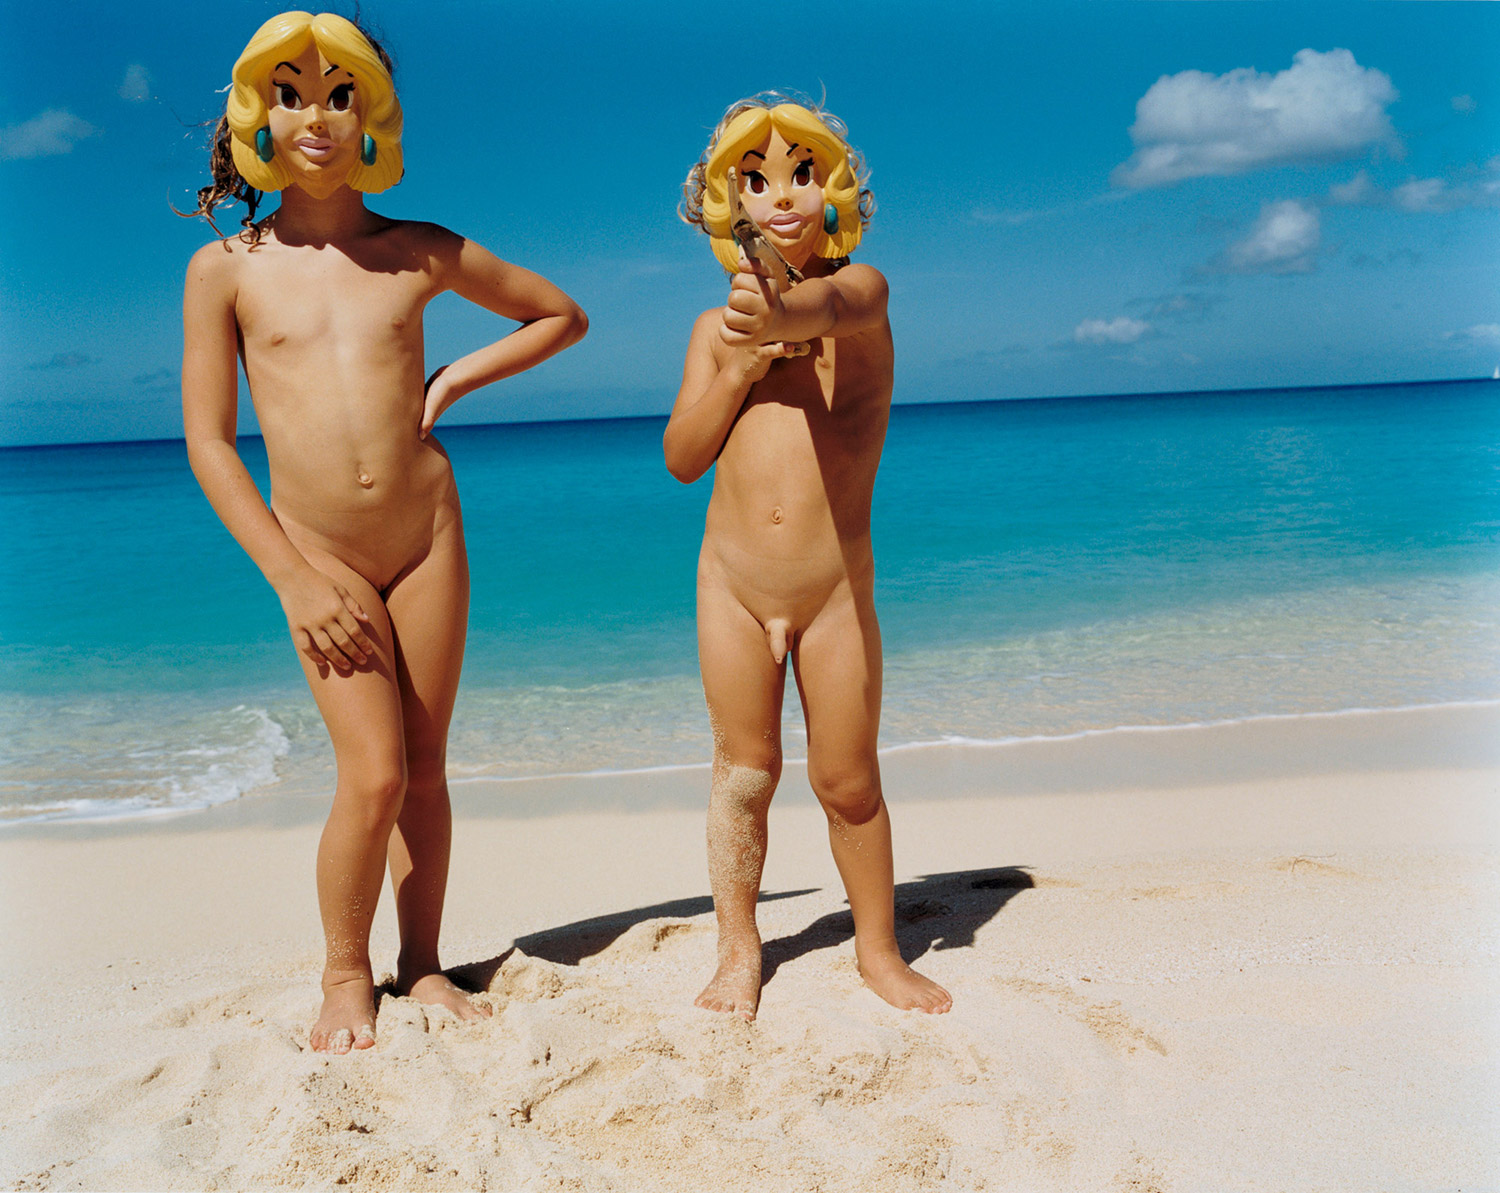 Tierney Gearon - nude children on beach wearing masks